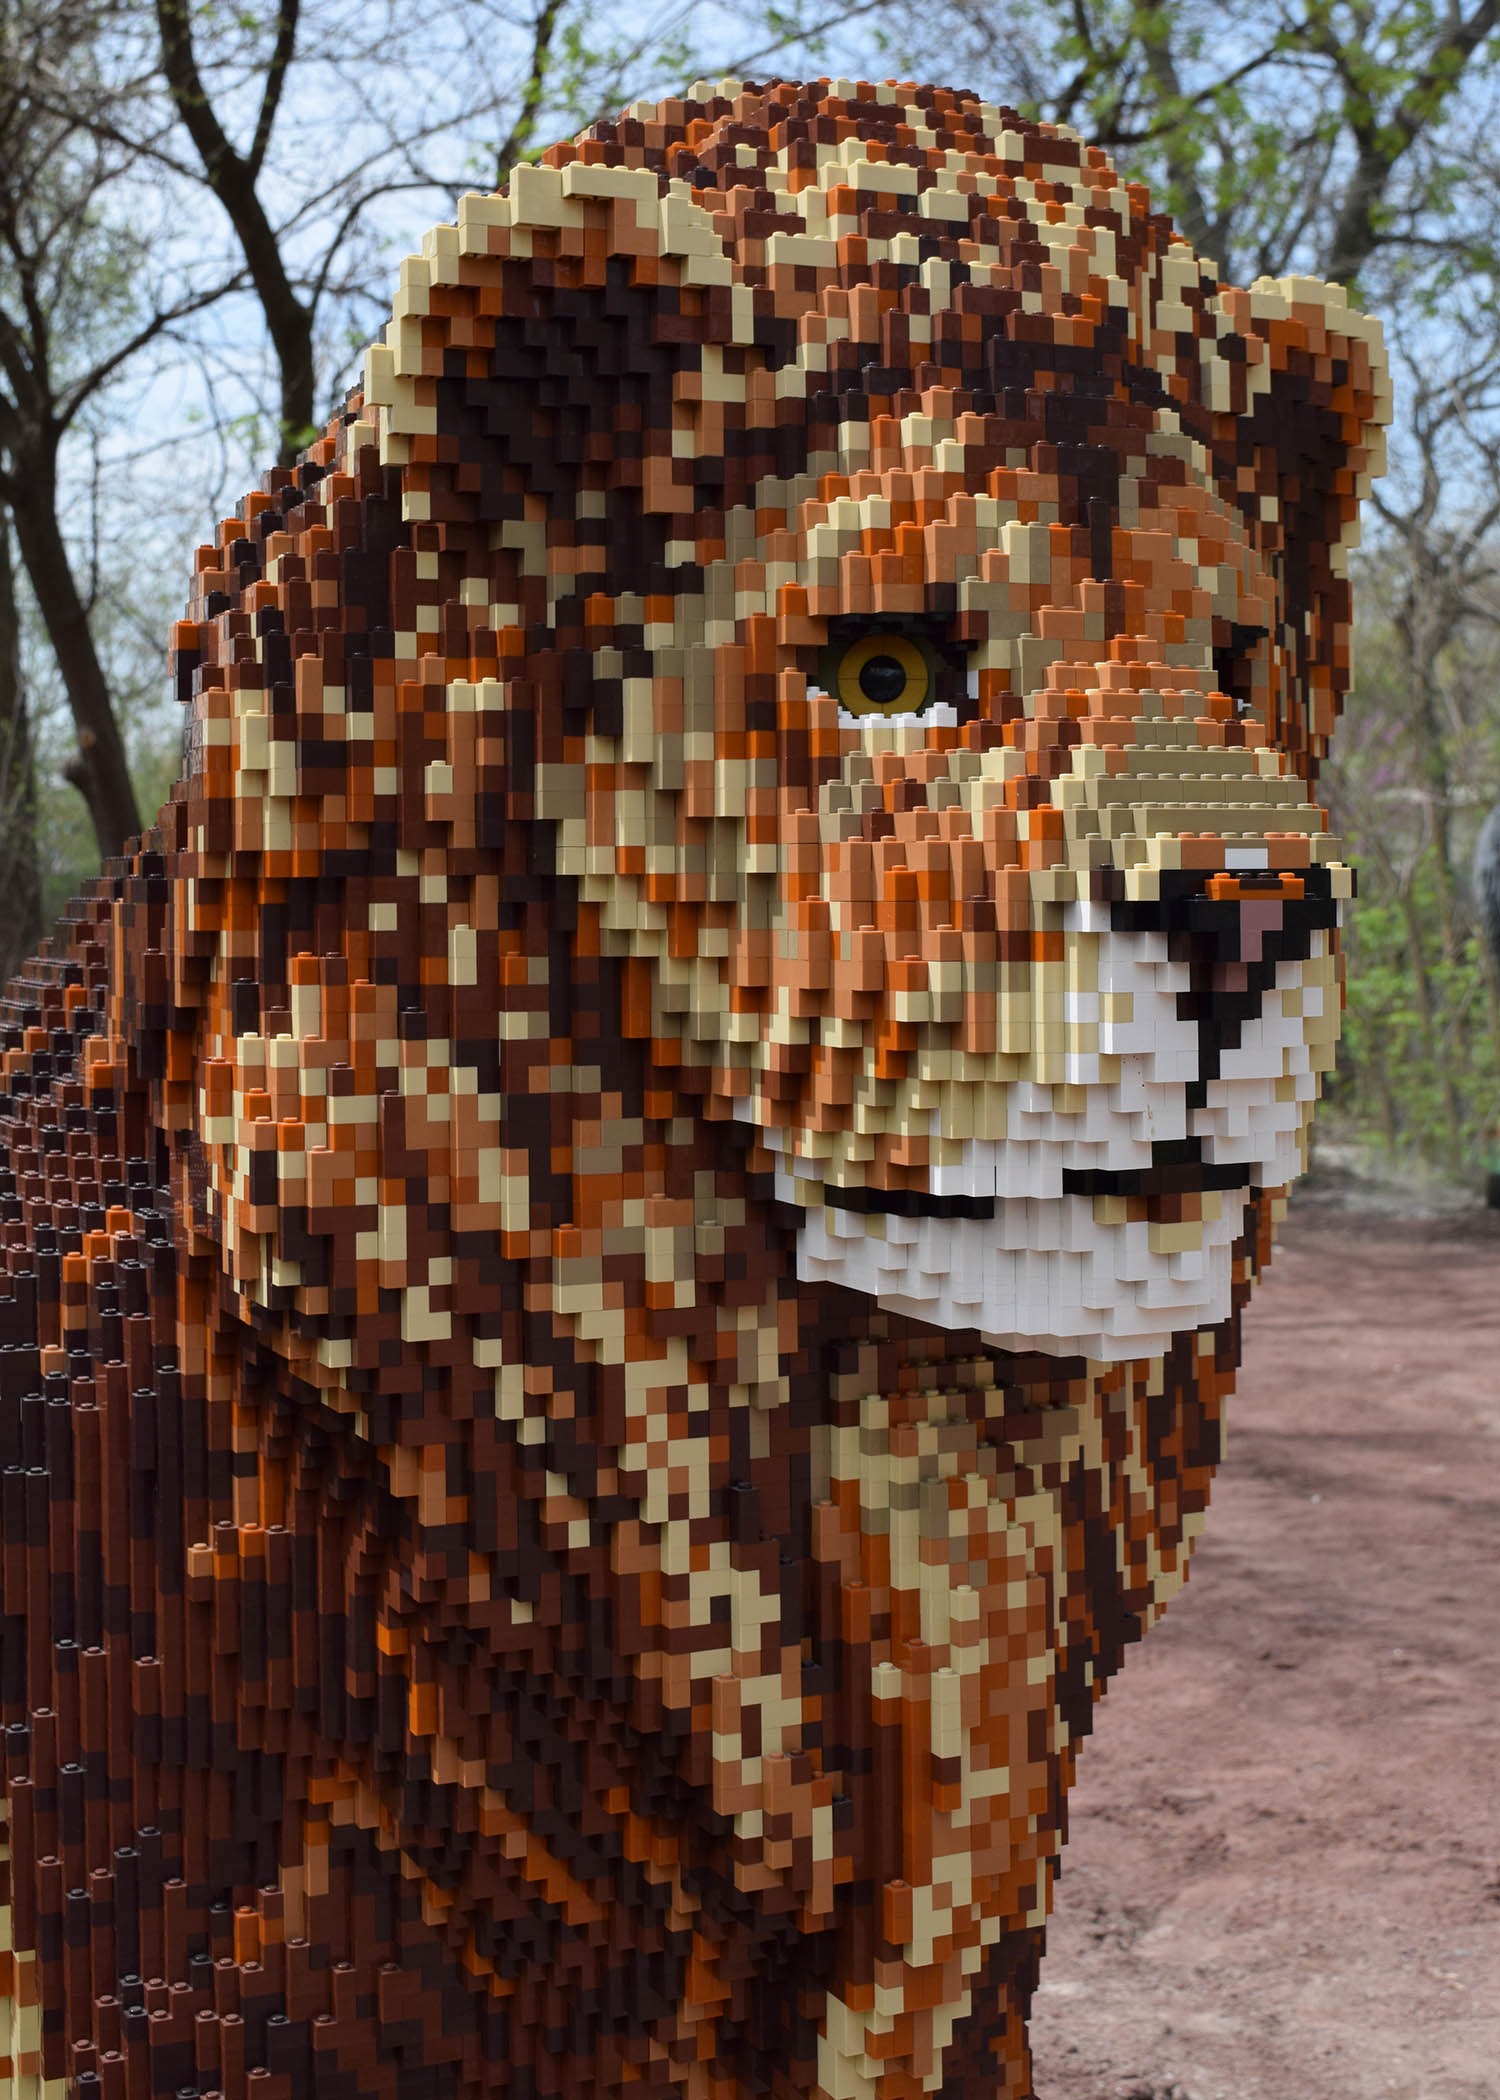 Brick-Safari-Lion.jpg